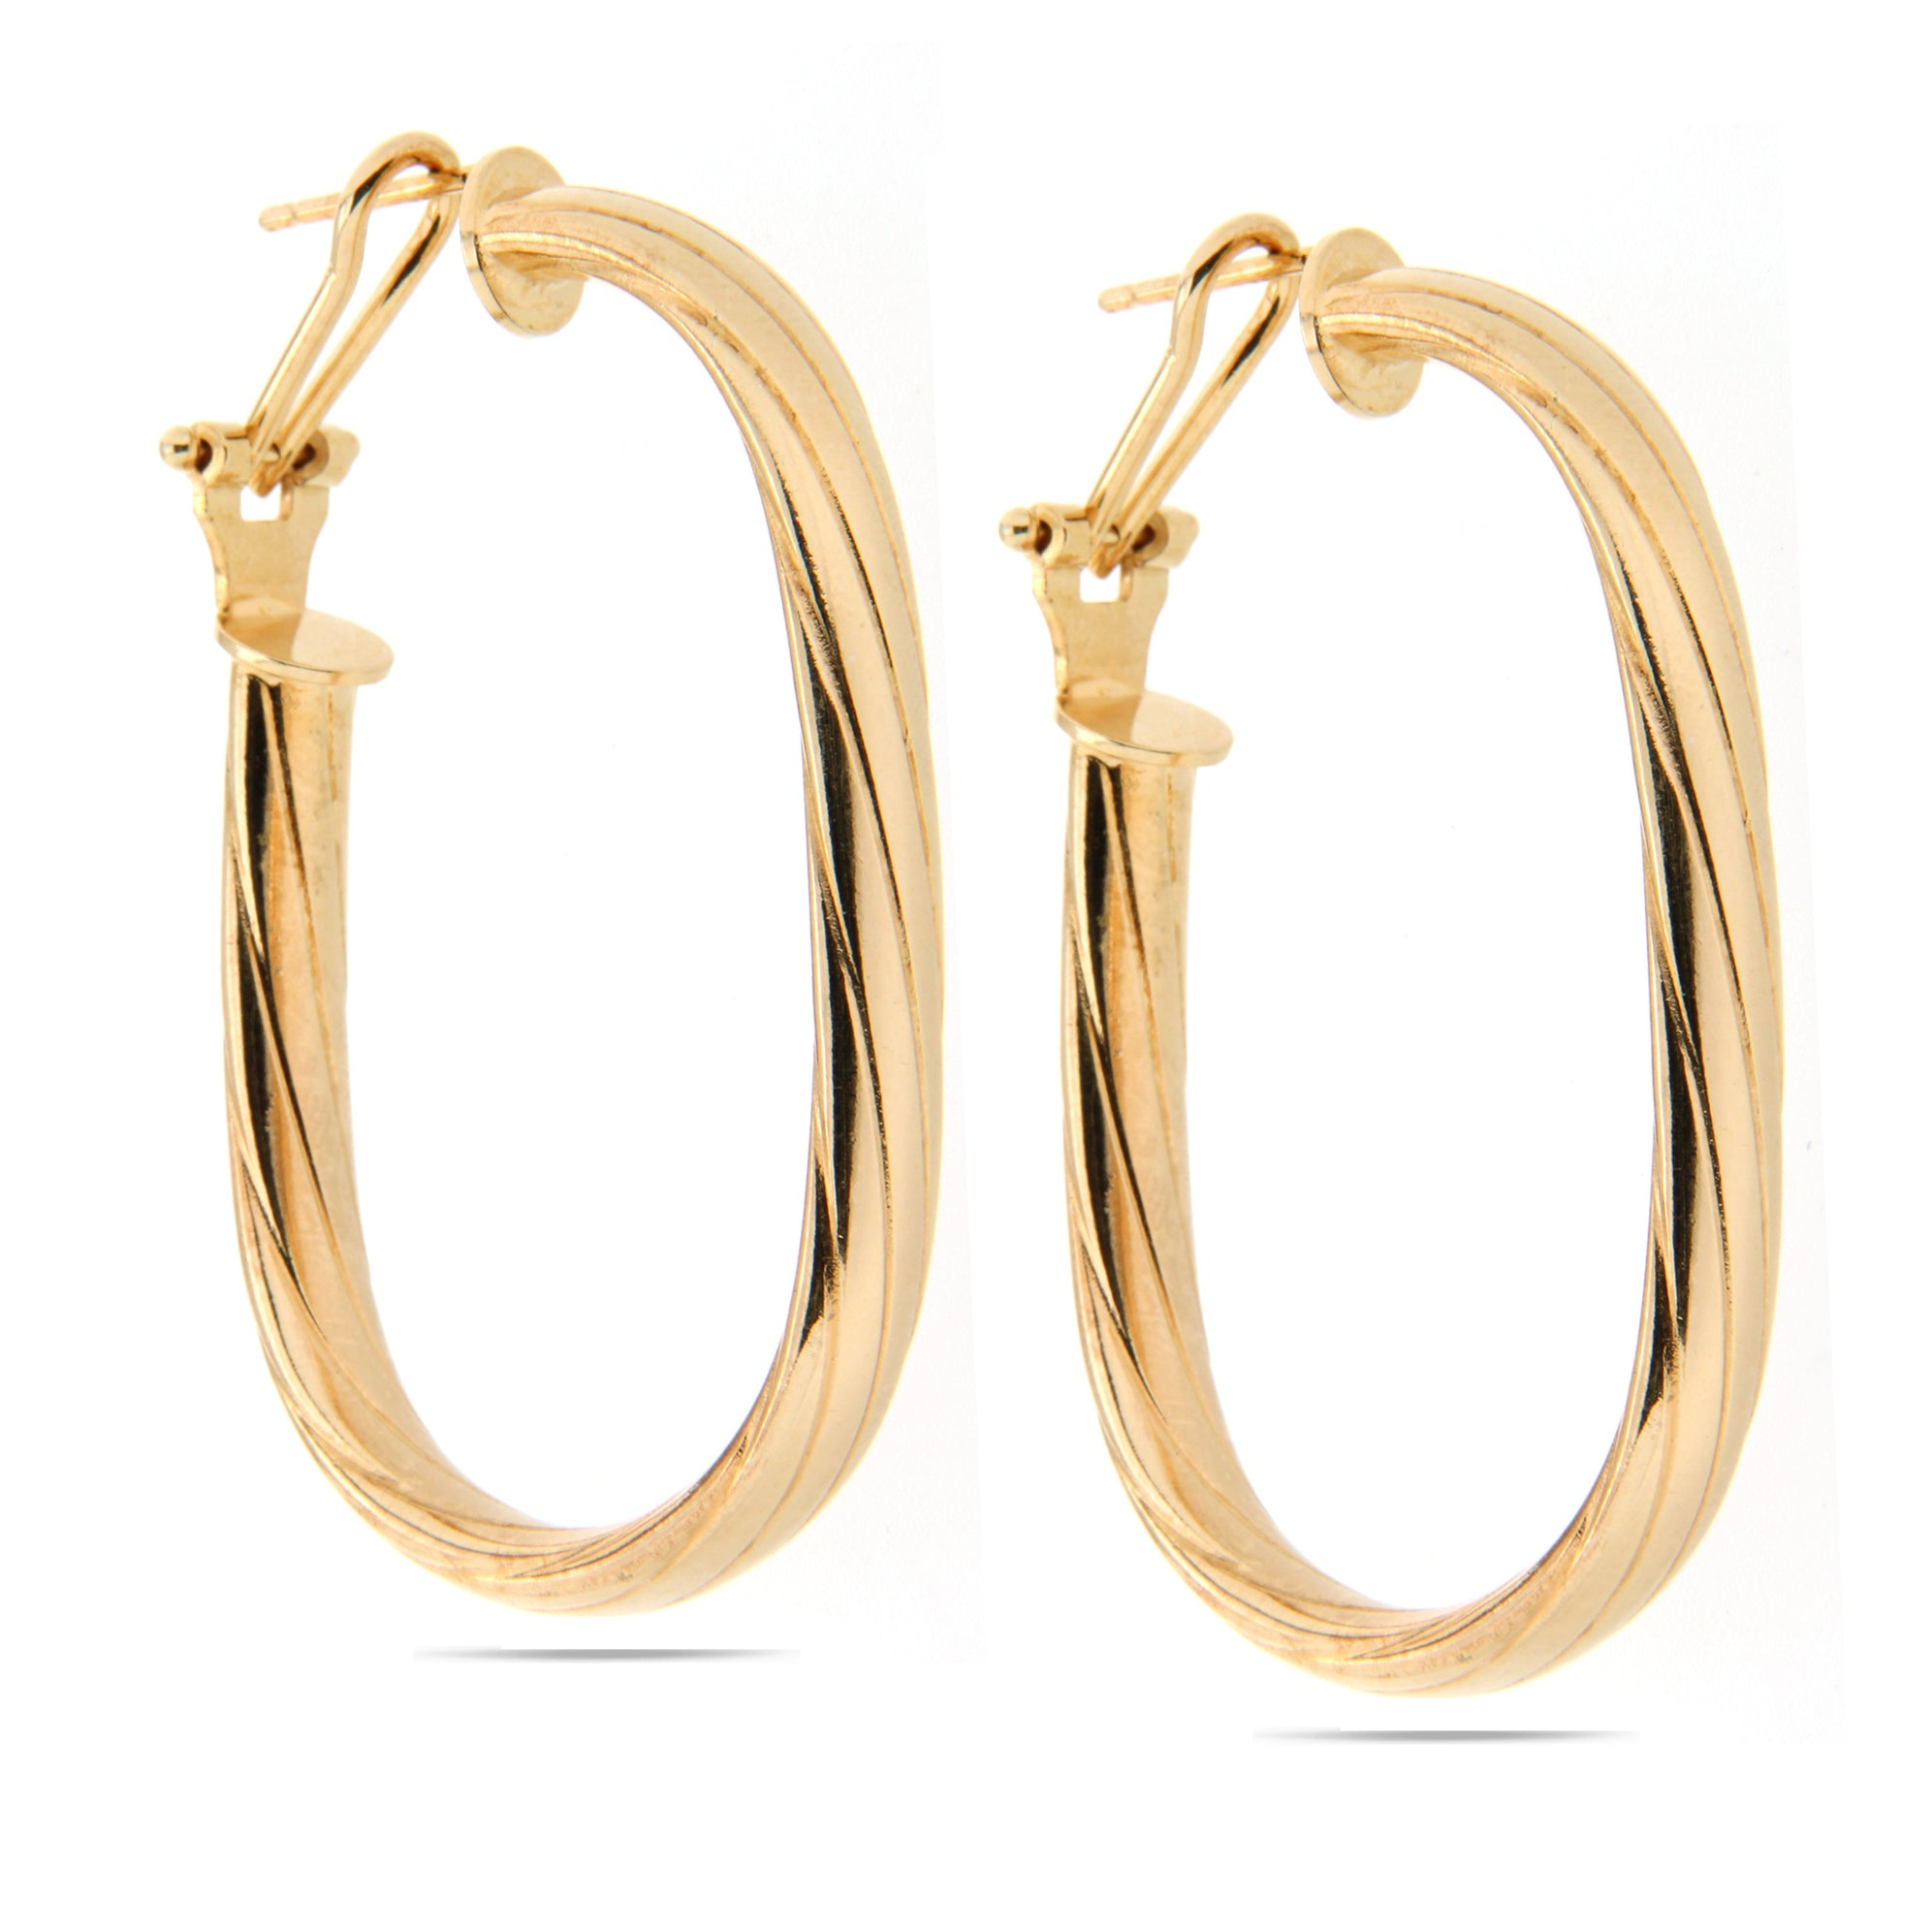 Forever Last 18k Gold Plated Women's Twisted Tube Oval Hoop Earrings